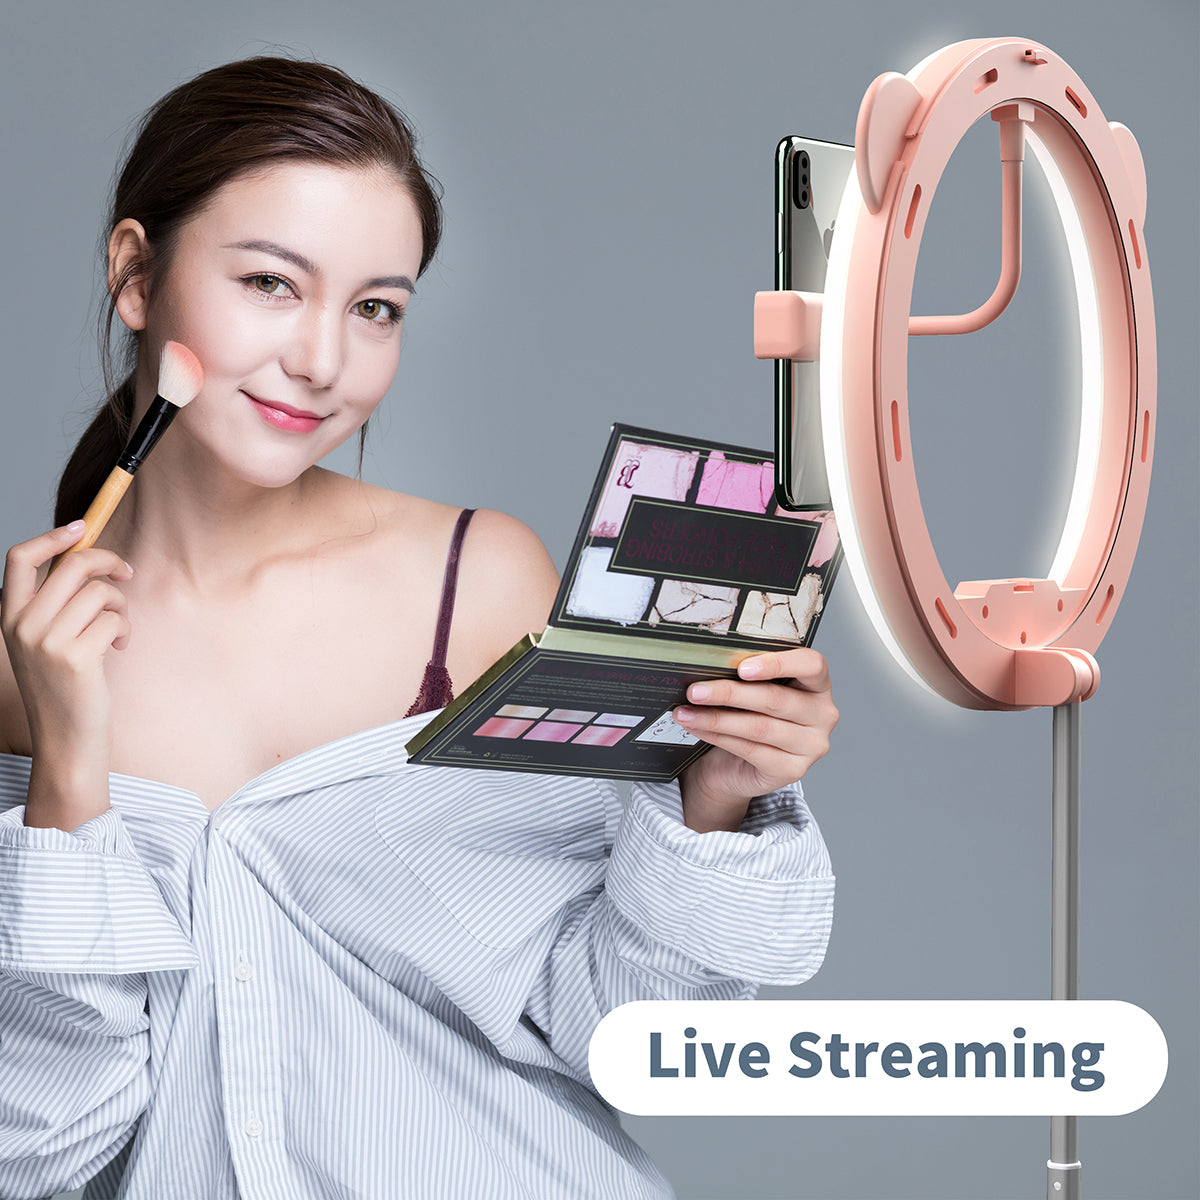 Zecti 10 inch Ring Light with Stand and Phone Holder, LED Selfie Light Ring with Dimmable 3 Color Modes and 10 Brightness for Live Stream Makeup Photography Compatible with iPhone Xs Android-Pink